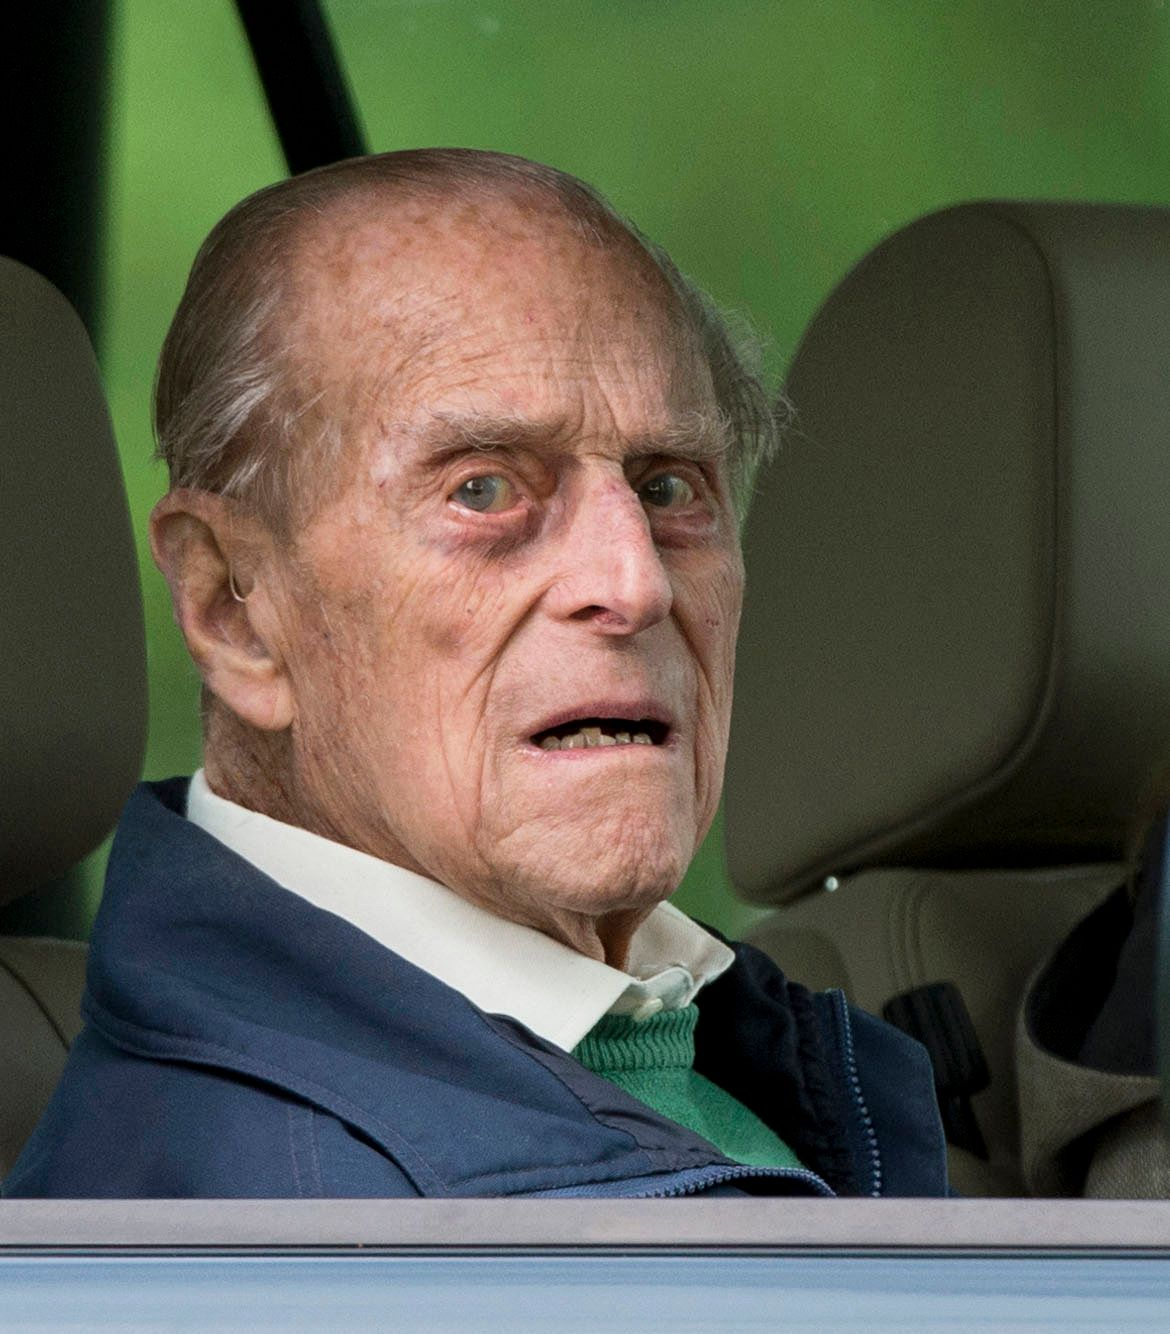 Prince Philip Pens Letter Of Apology To Woman Injured In Car